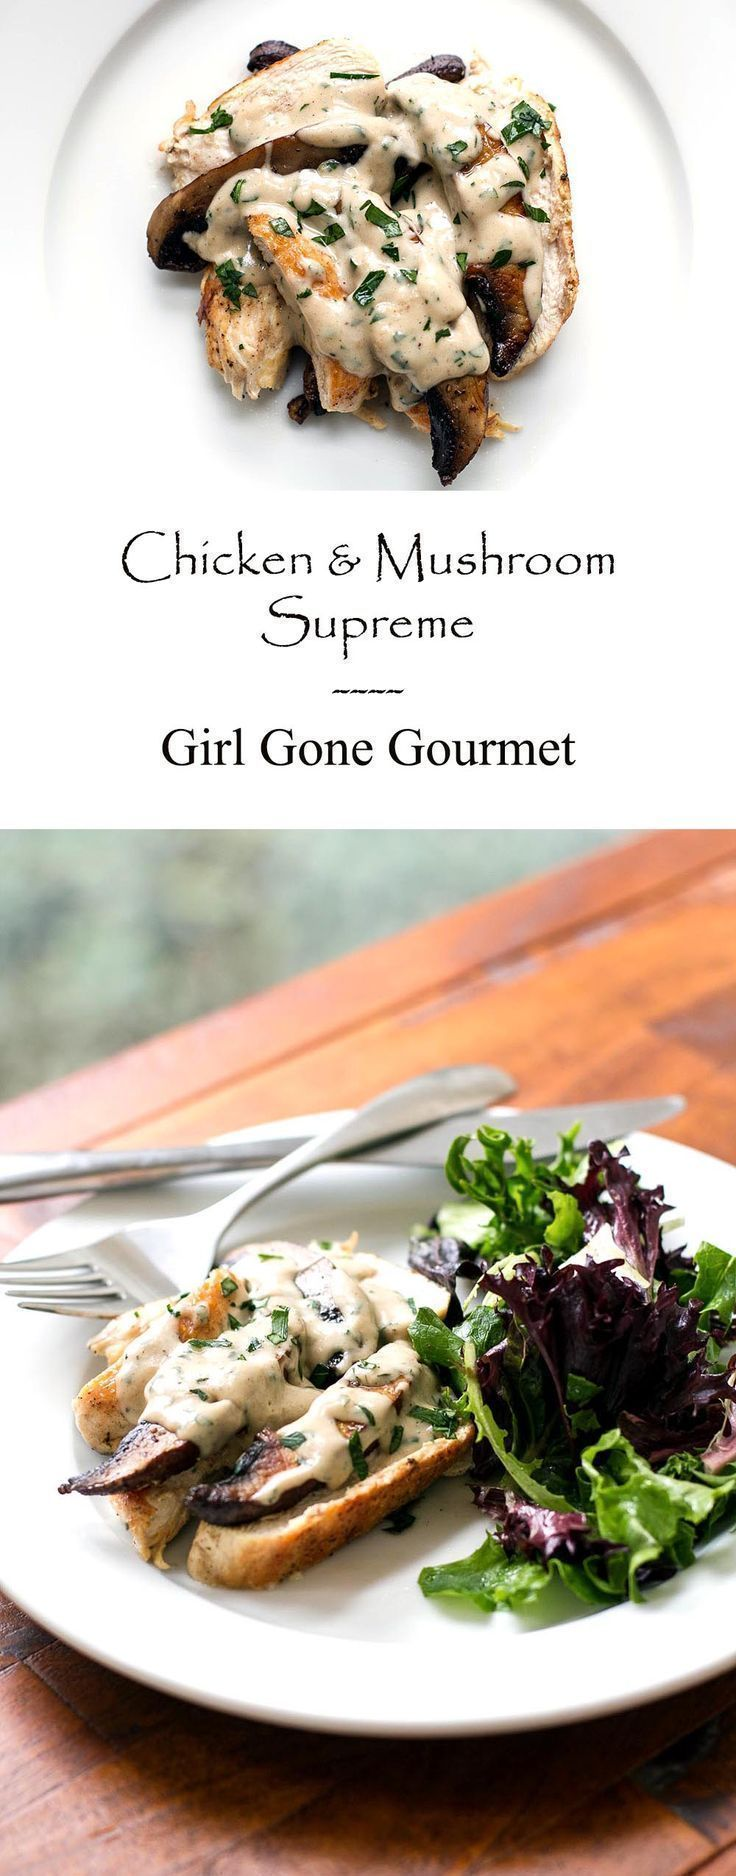 Chicken and mushrooms with a velvety, creamy supreme sauce made with chicken stock, butter, flour, and cream | girlgonegourmet.com